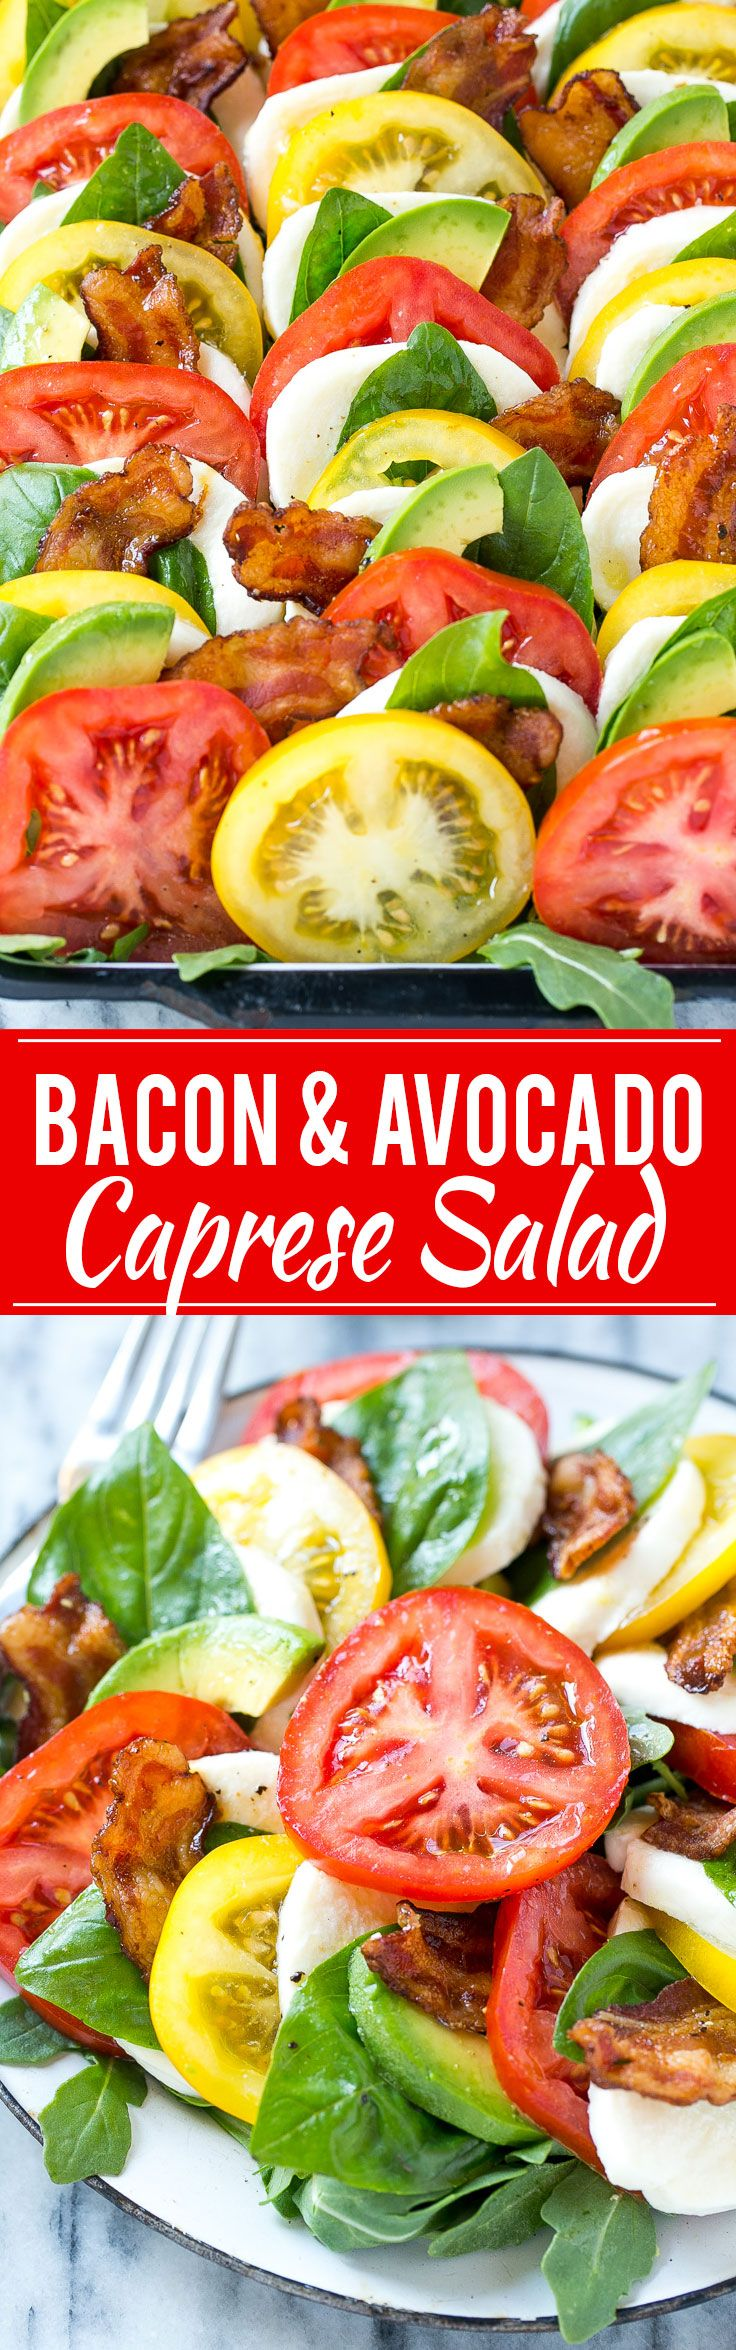 This recipe for bacon caprese salad is layers of tomatoes, mozzarella cheese, bacon, avocado and basil leaves, all drizzled with a lemon vinaigrette. The perfect summer main course or side dish! SmithfieldFlavor AD